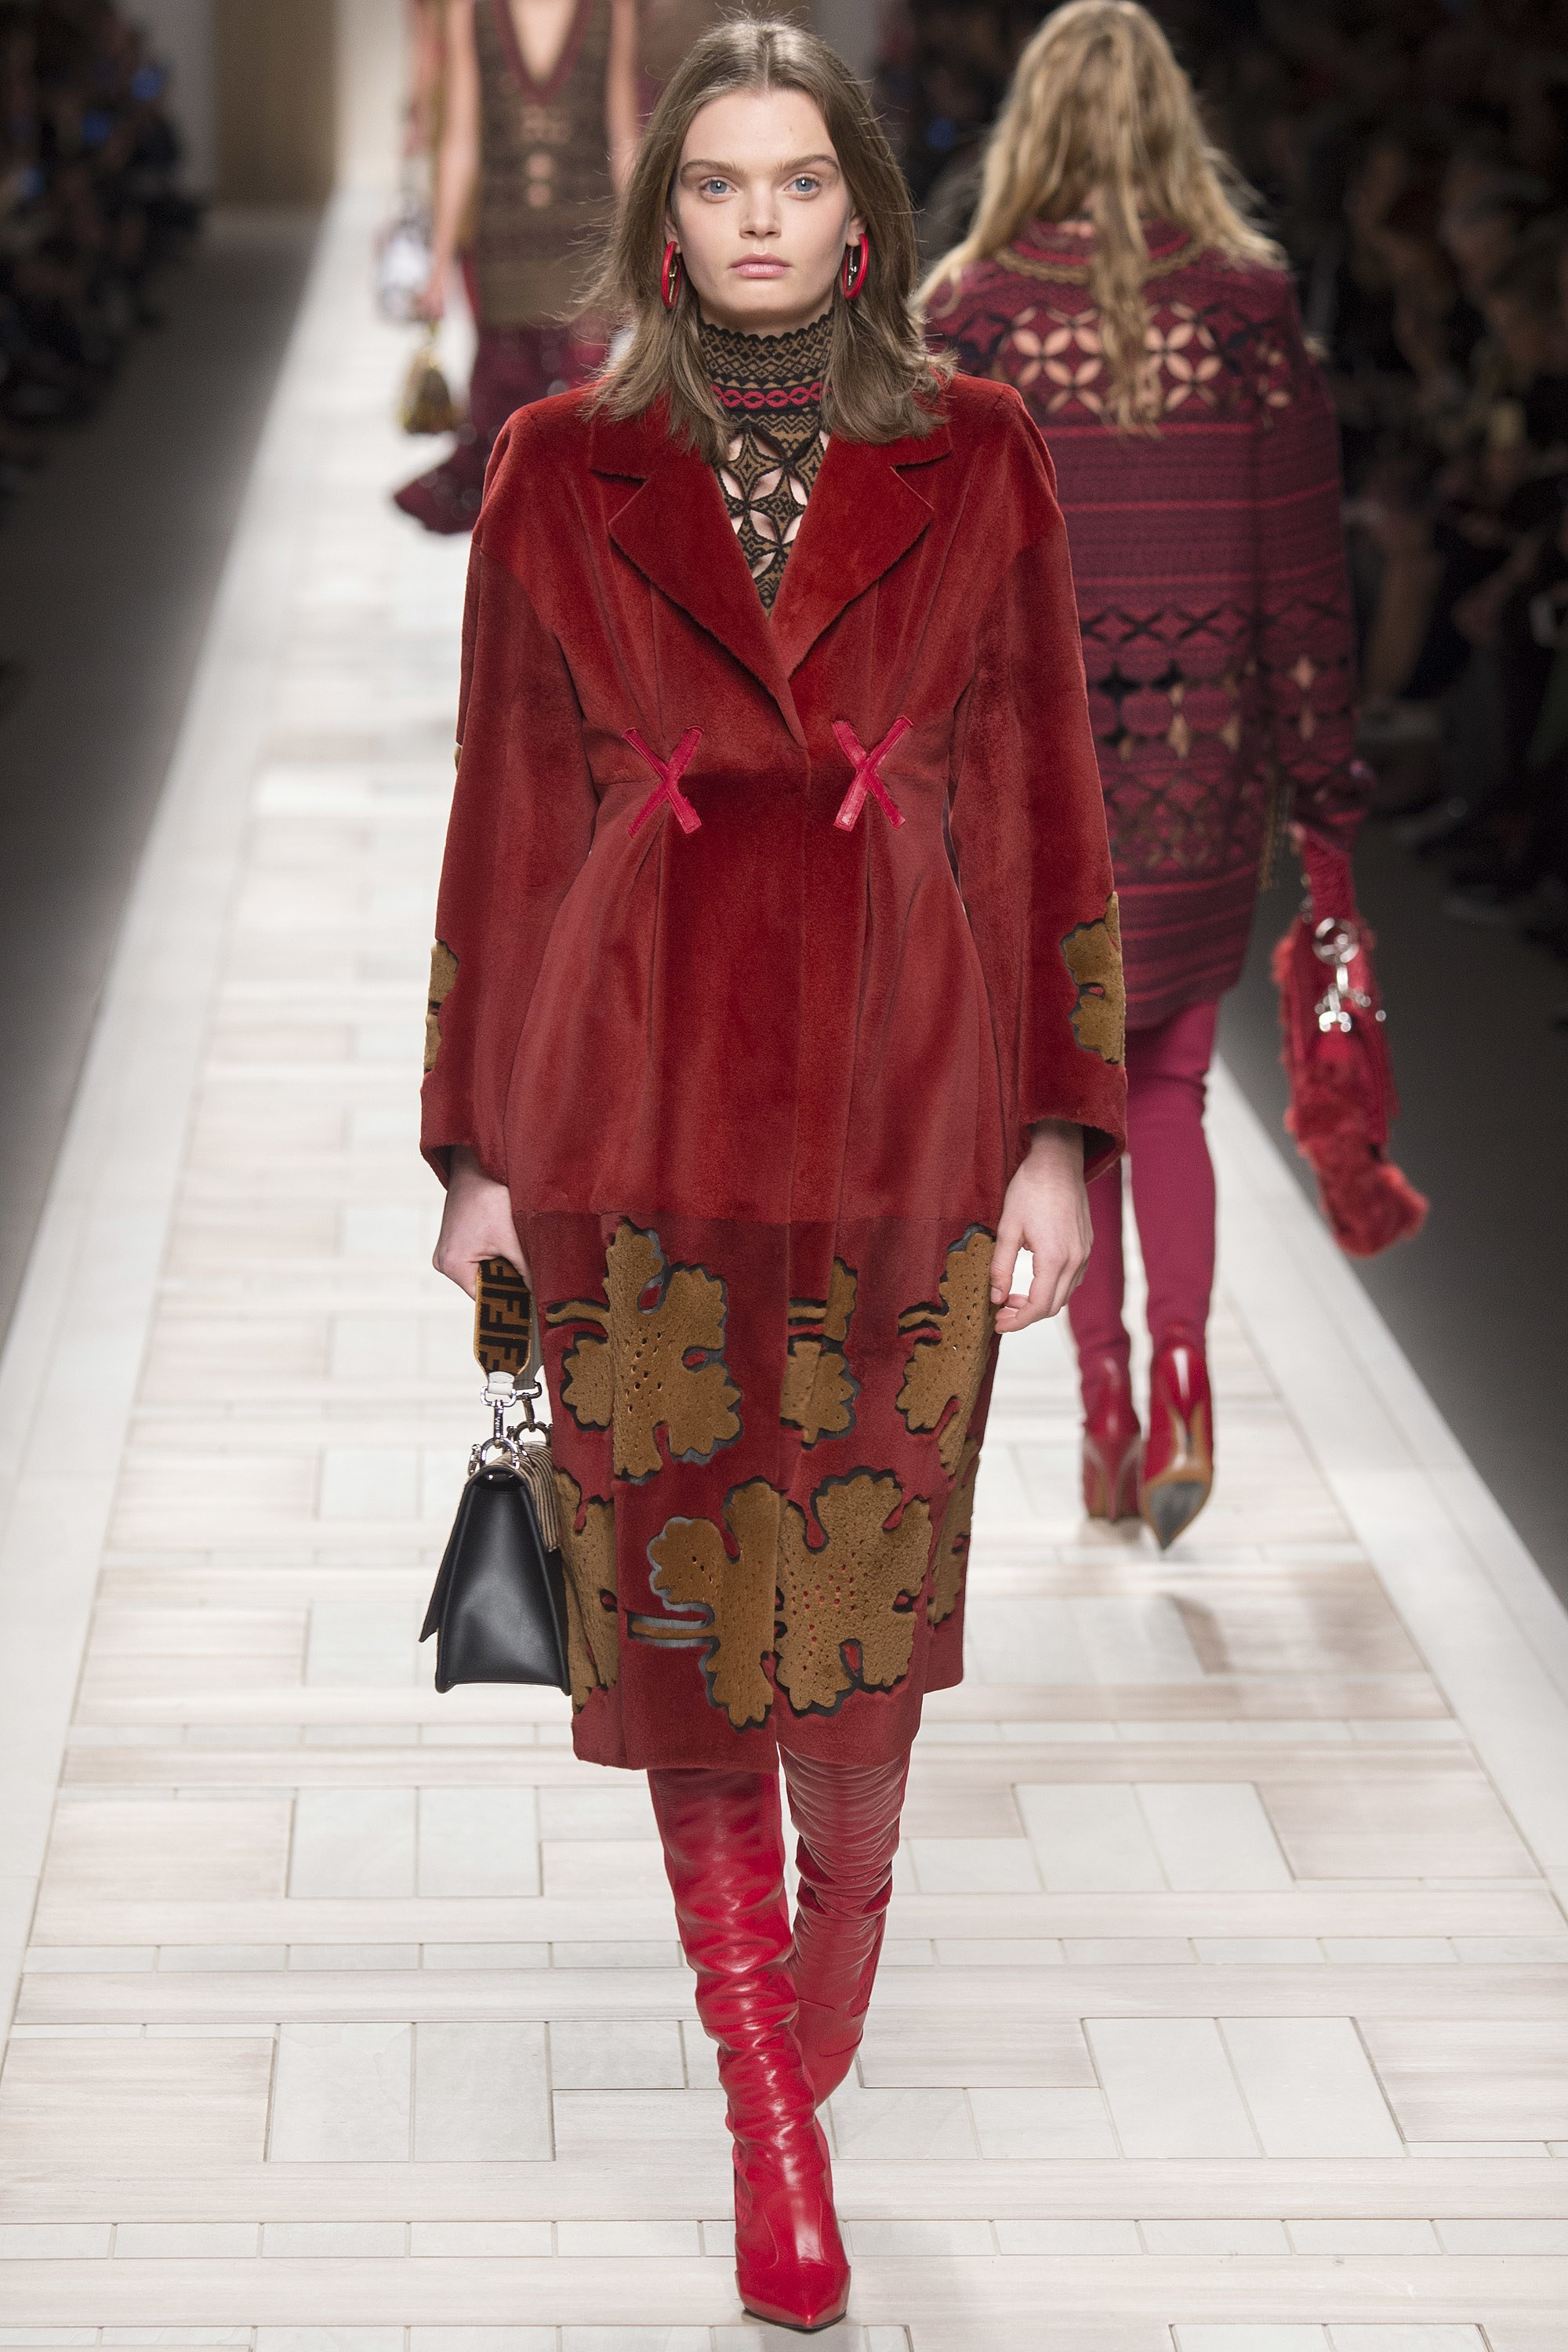 Fendi Fall 2017 - Ready to Wear - red leather cross-ties with matching boots complete an already fab look